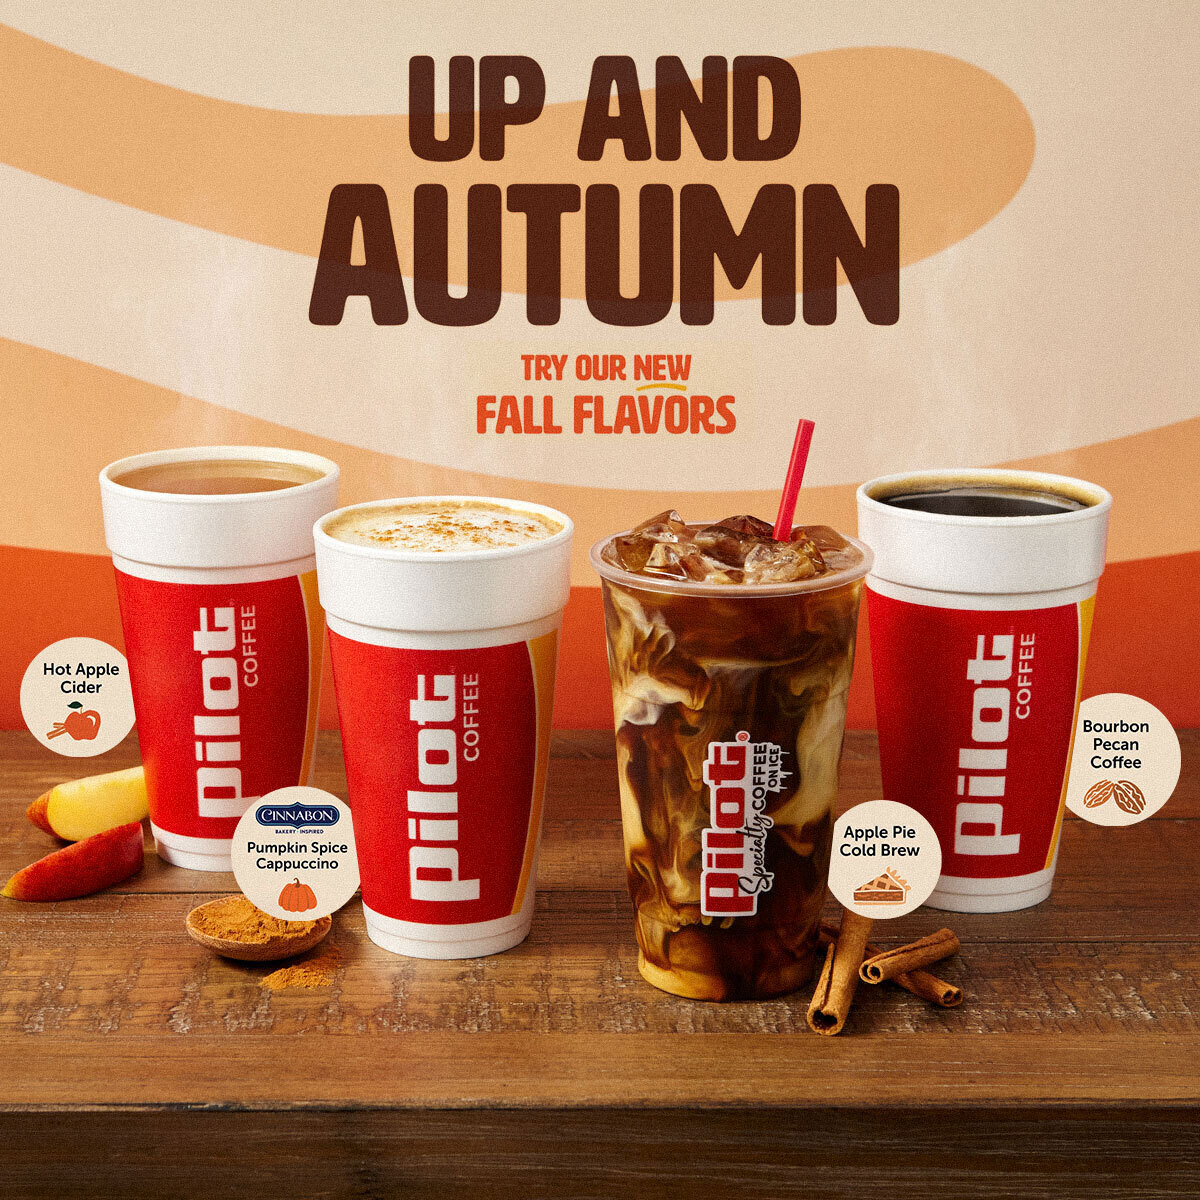 It's going to get cooler outside. But on the bright side, we've got some new fall flavors sure to make you smile. Which one are you trying first?